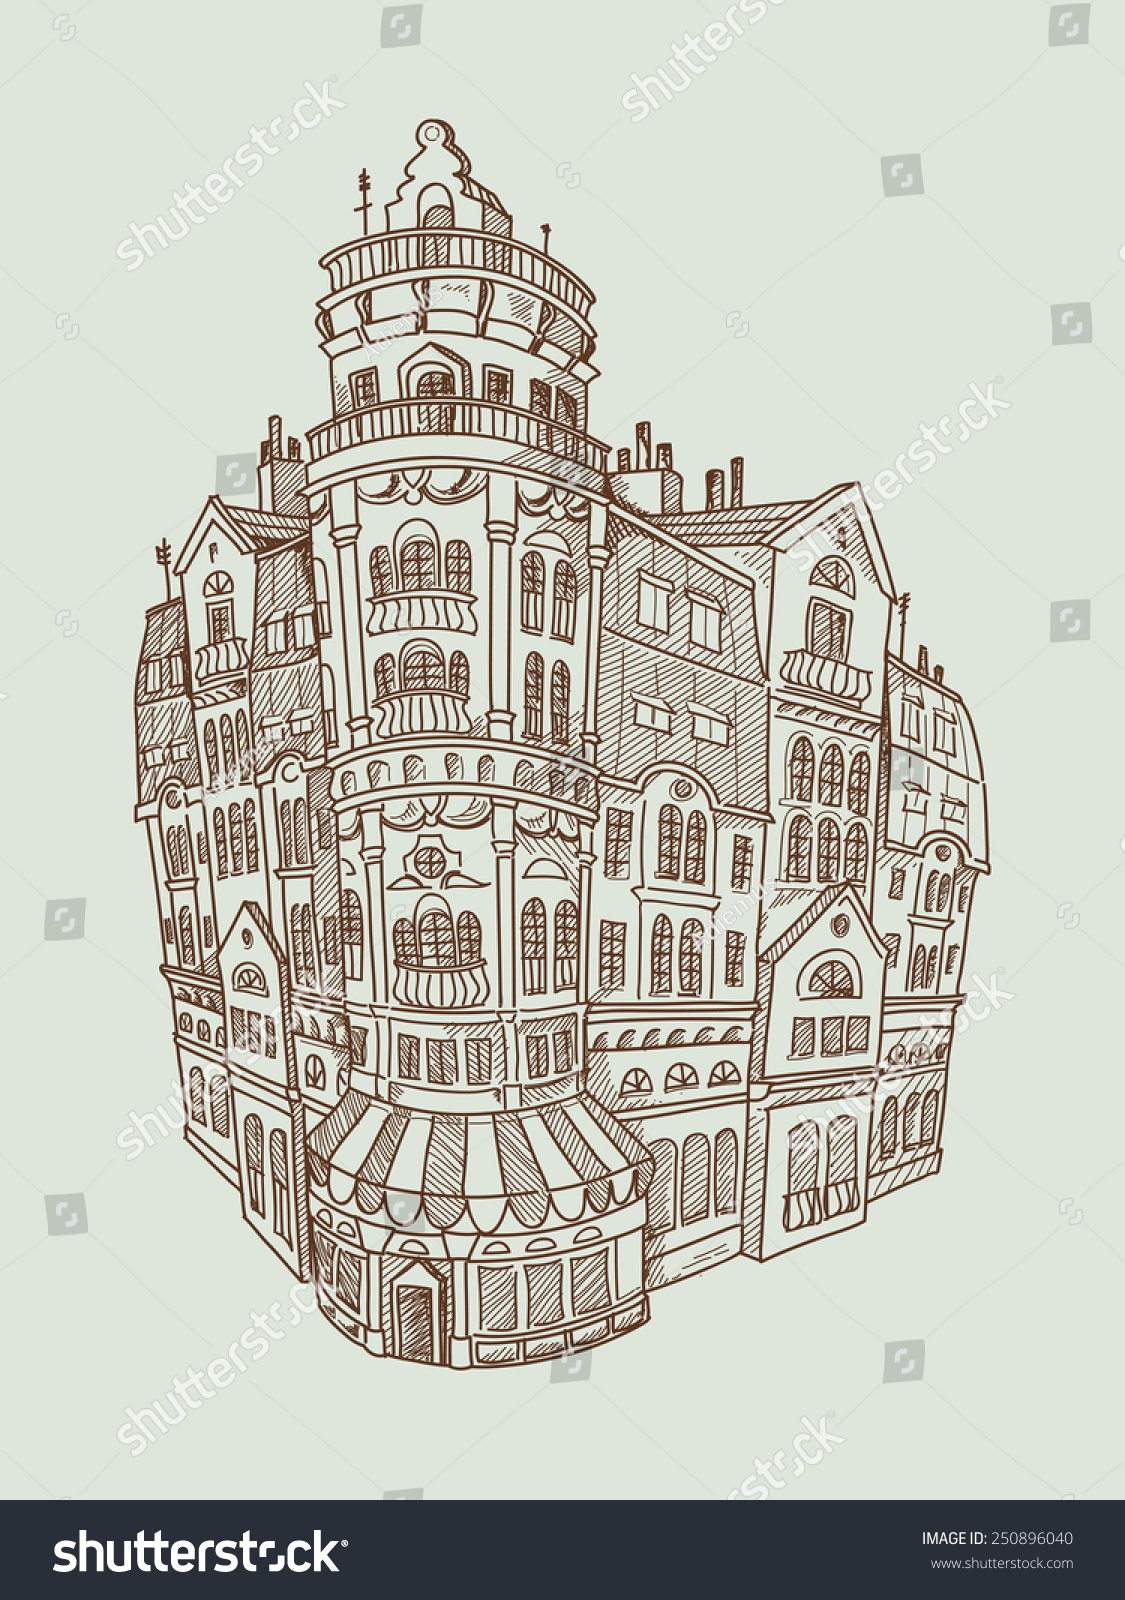 Drawing Of Multistory Luxury House Stylized As French Architecture